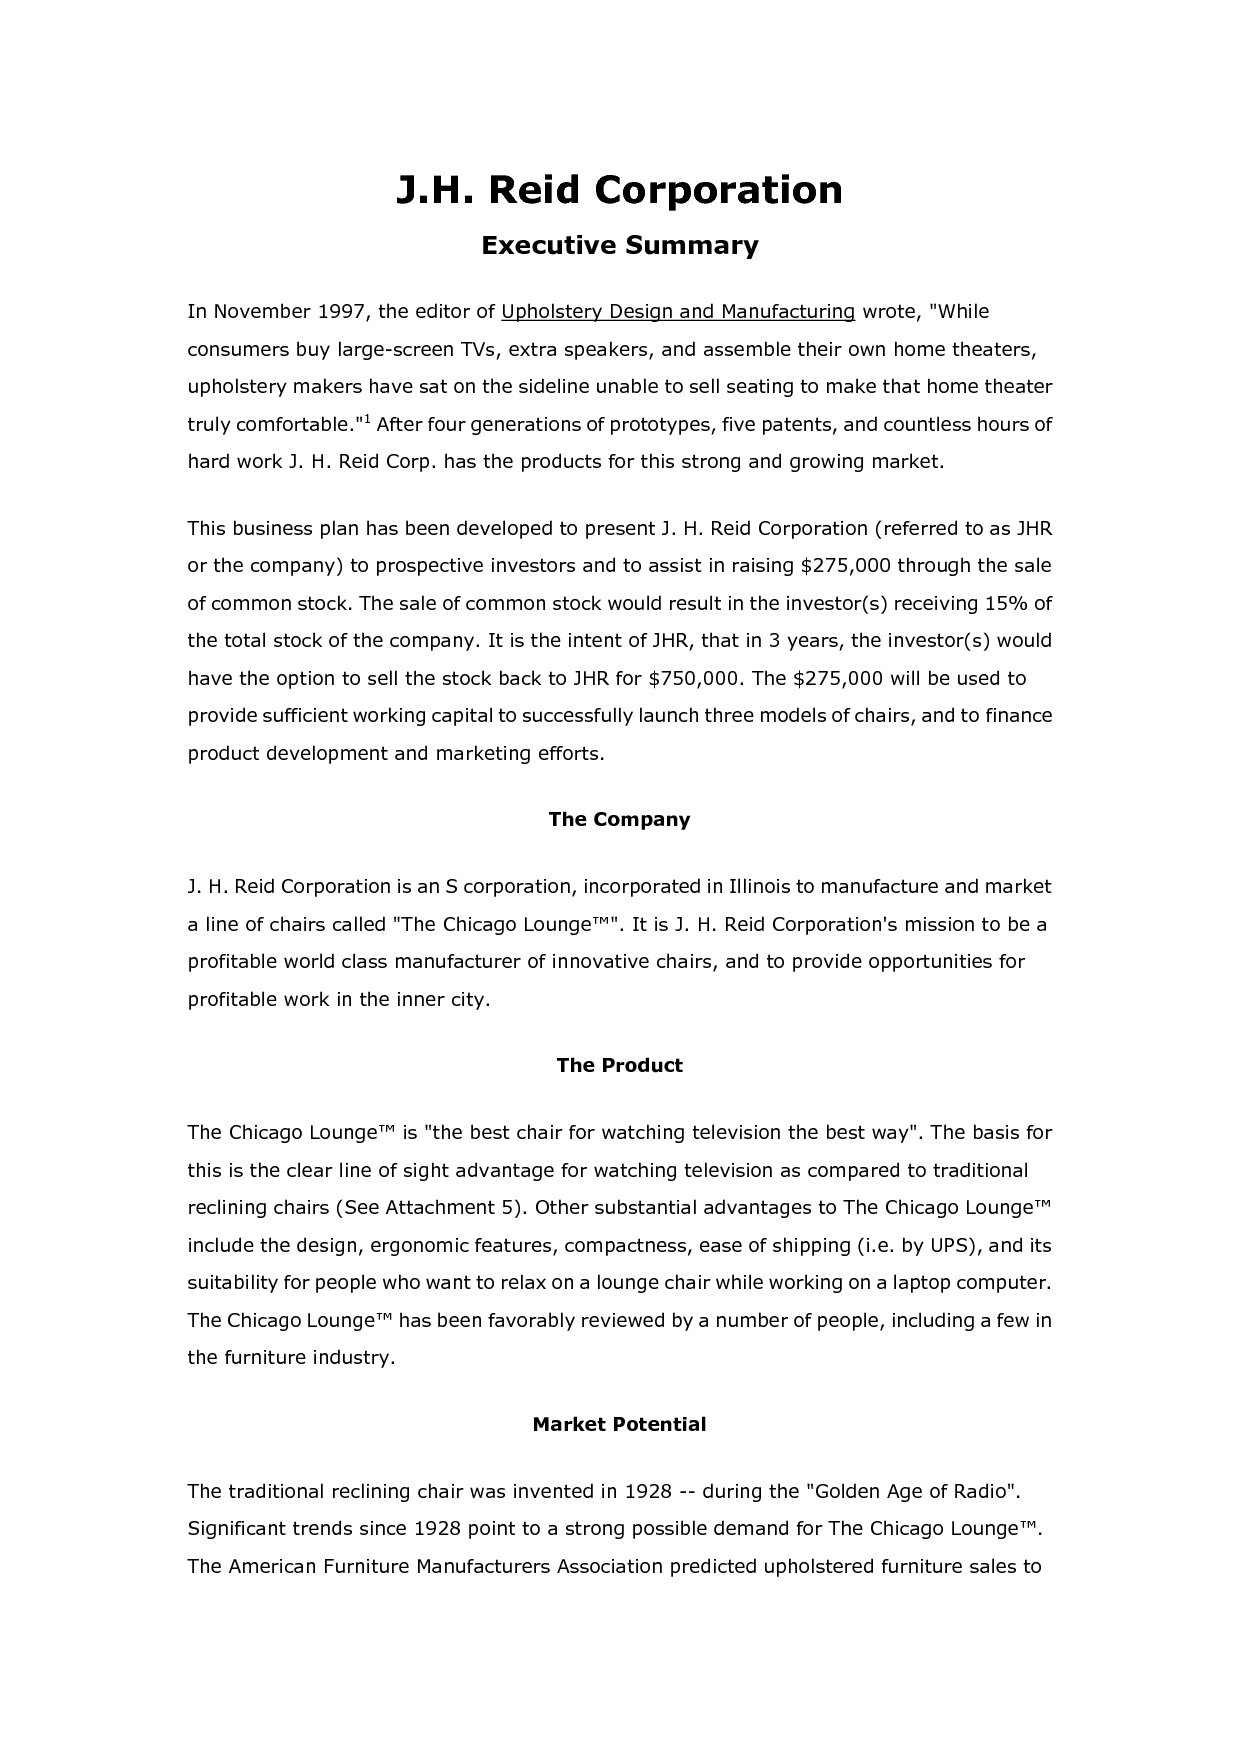 business argumentative essay topics business essay sample response proposal essays essay examples socialsci ideas for proposal essay examples socialsci co ideas for proposal essays business argumentative